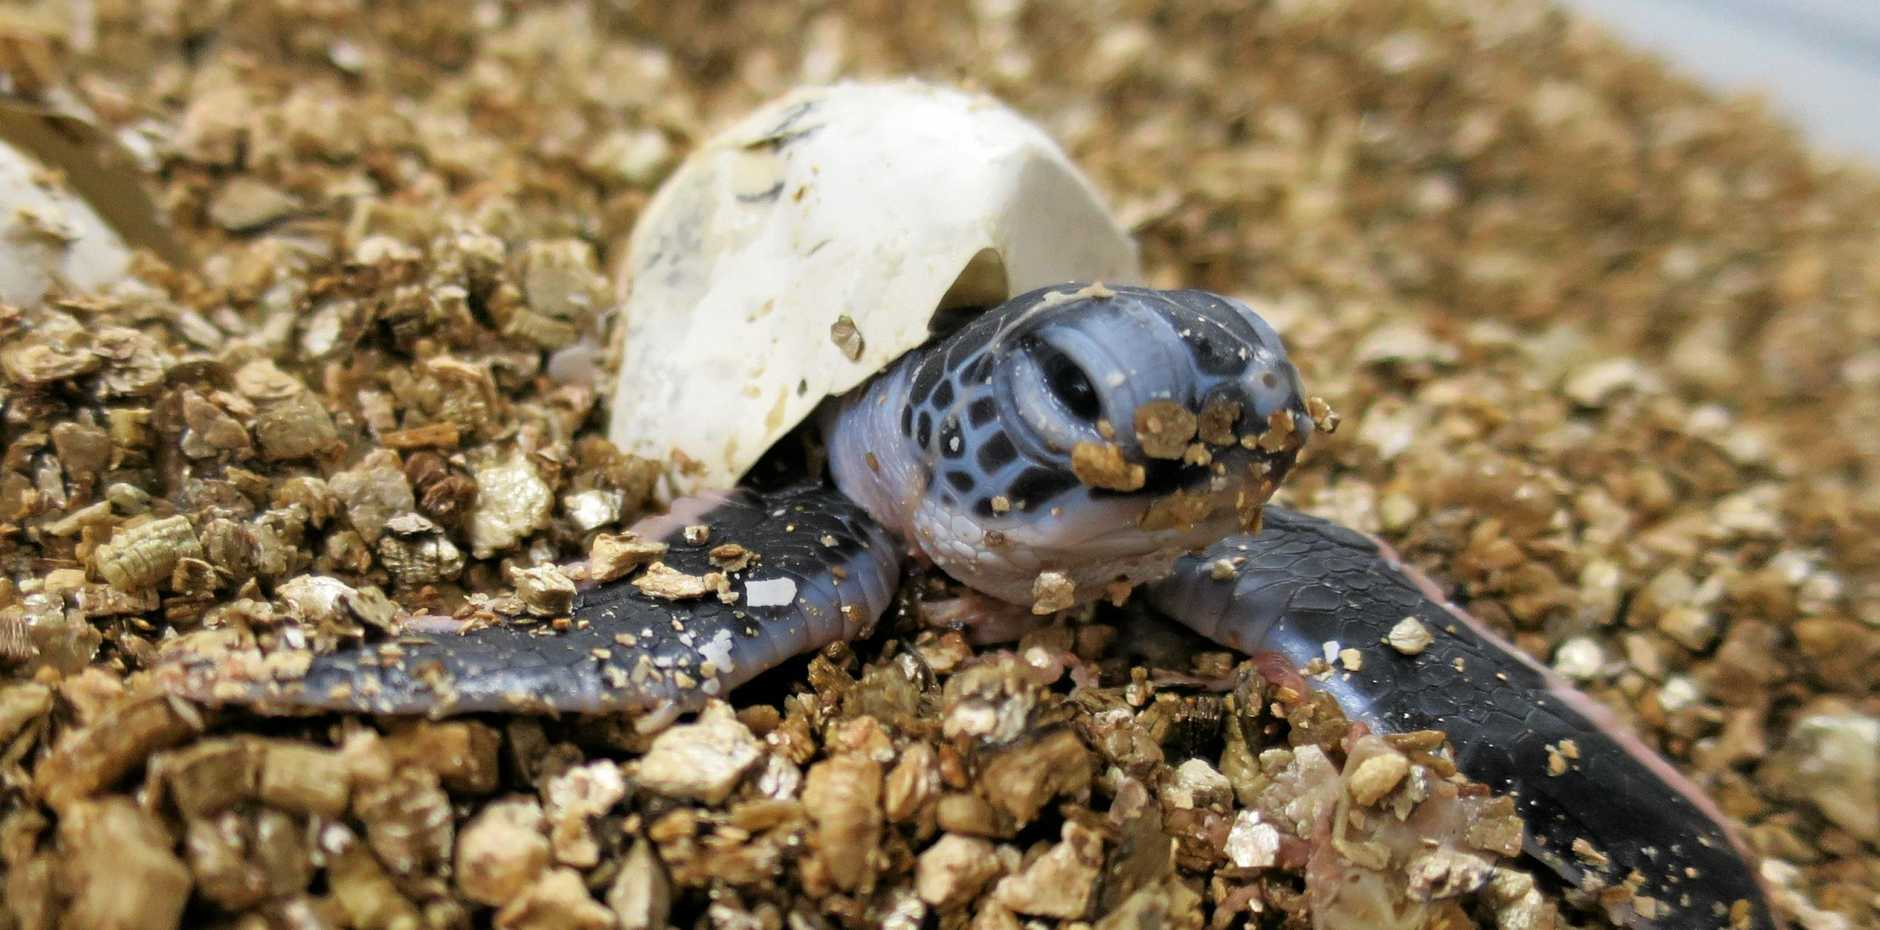 A sea turtle nest has been discovered and fenced off between Diggers Camp and Wooli. The nest contains about 80 eggs, which are due to hatch any day.